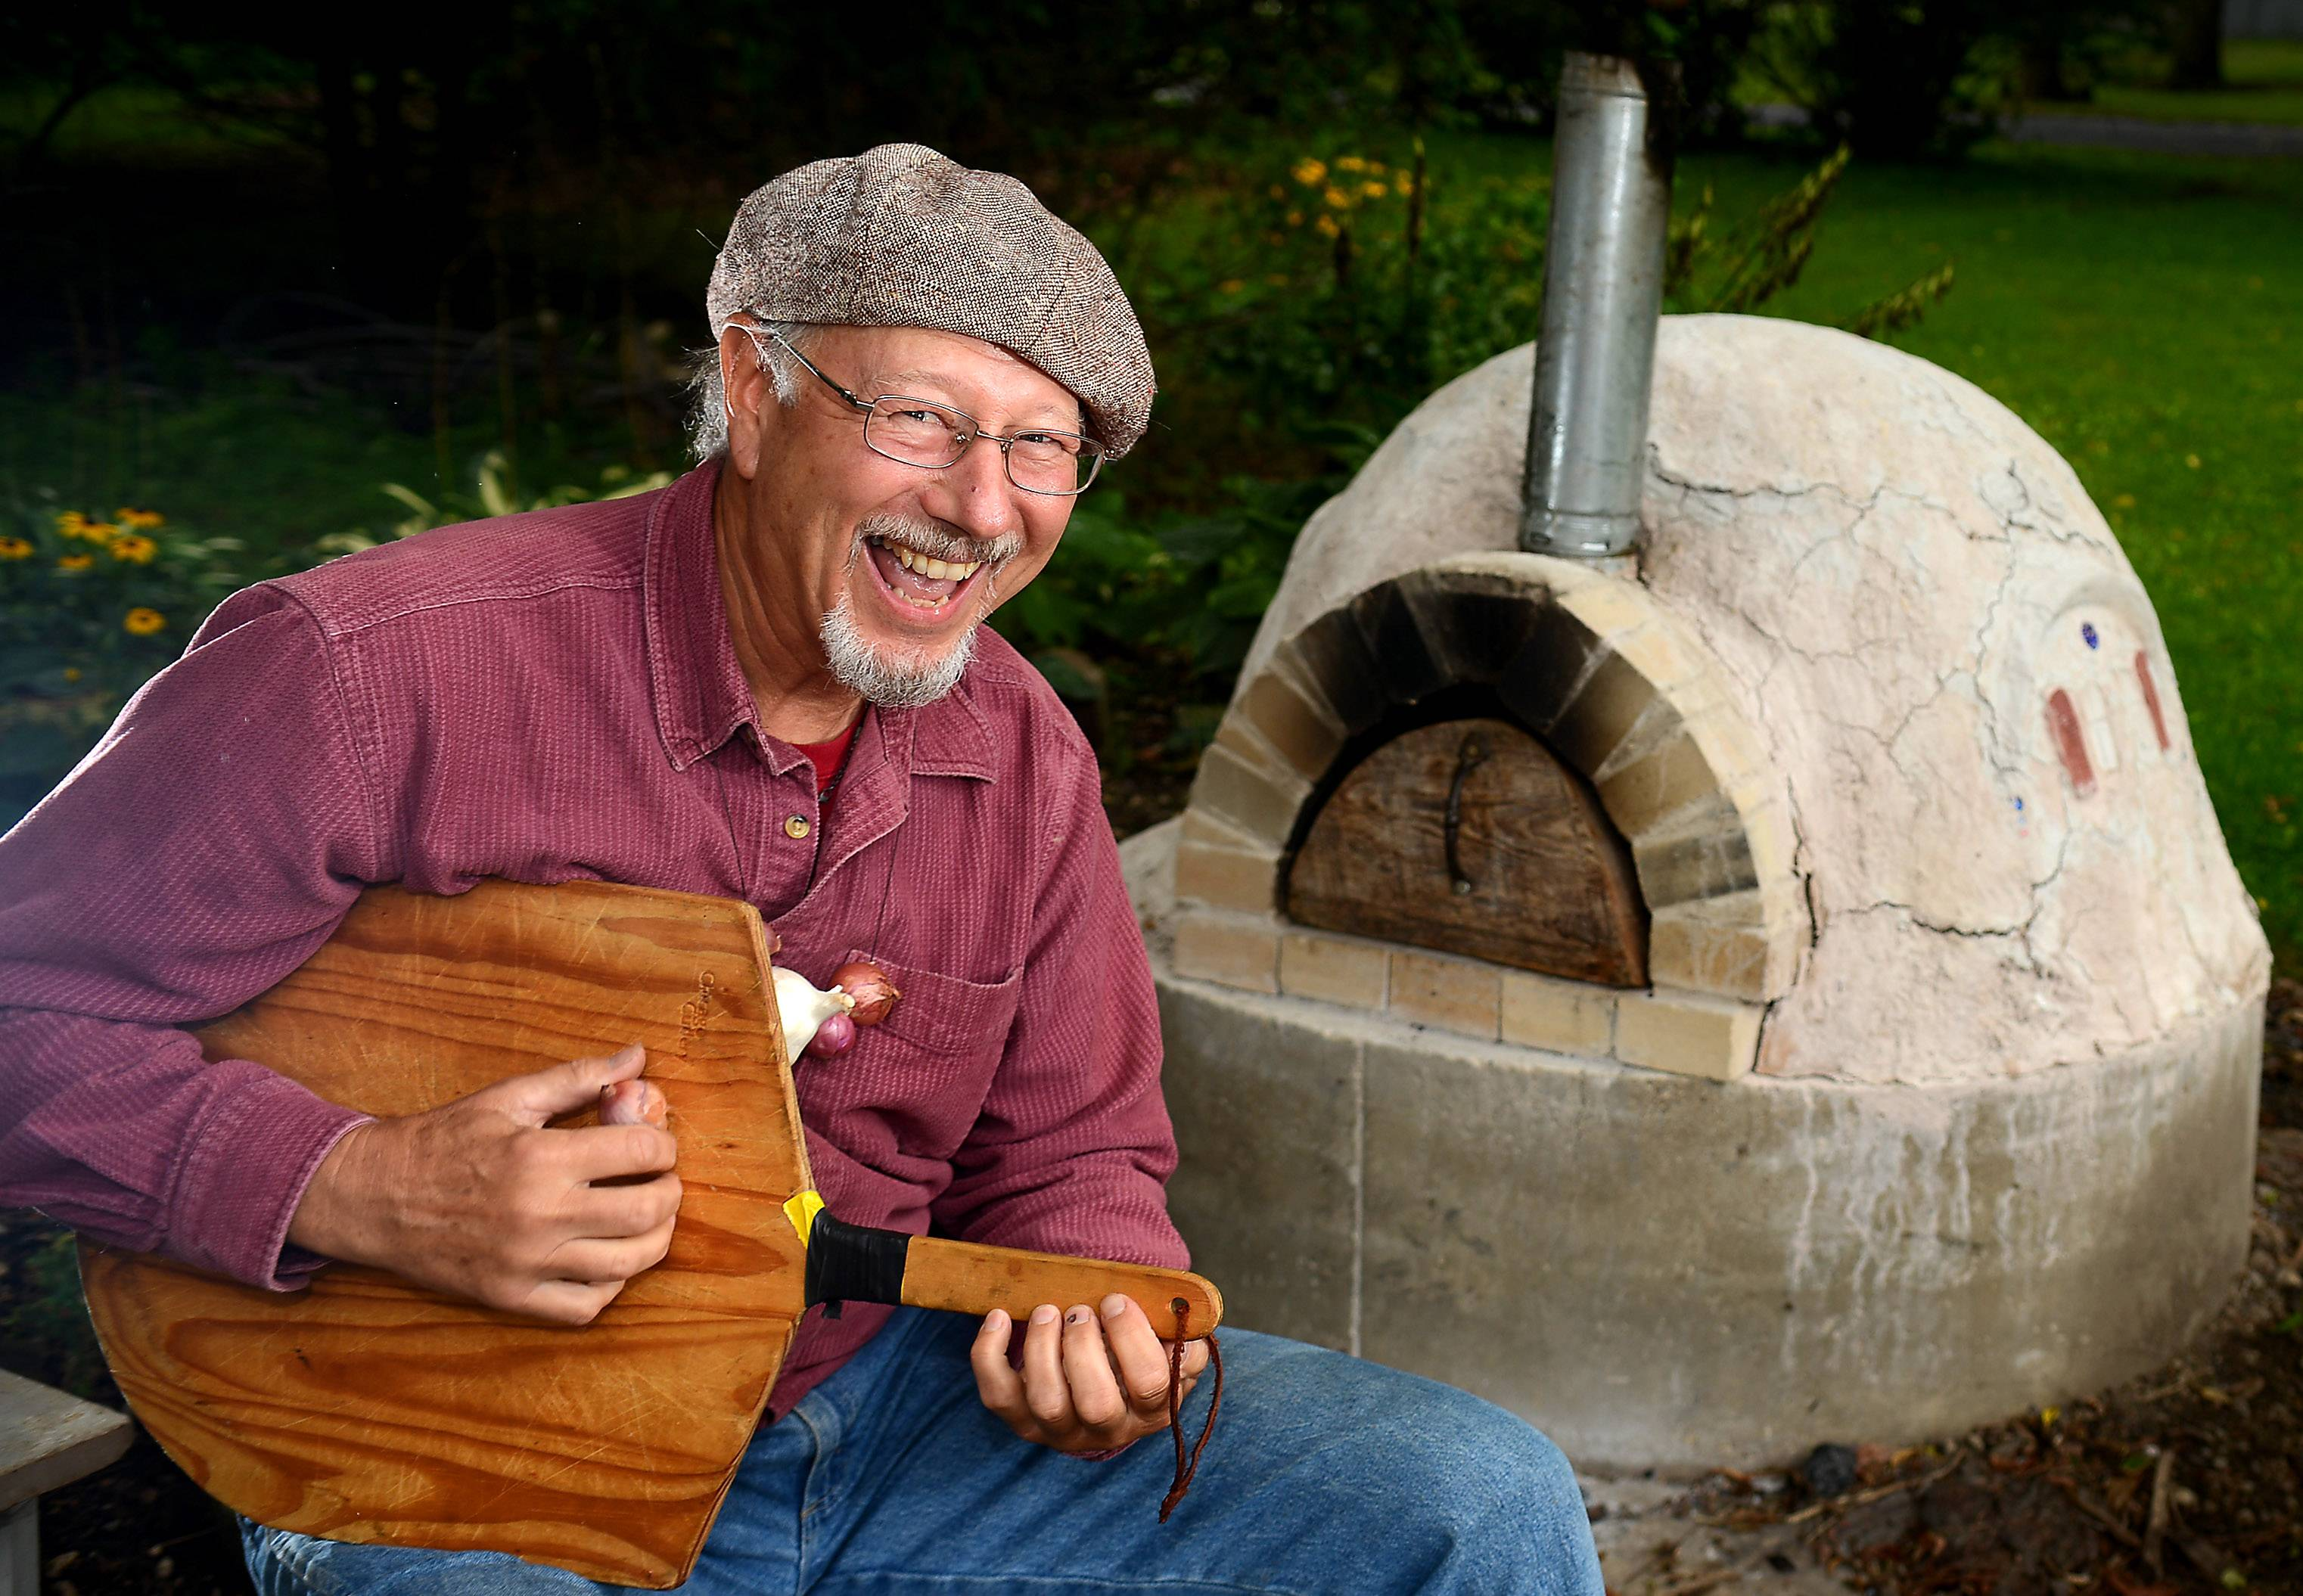 David Rench of Spring Grove plays a mean pizza paddle by his homemade clay pizza oven. His necklace of shallots and garlic shows his appreciation of the ingredients and may or may not help ward off vampires.